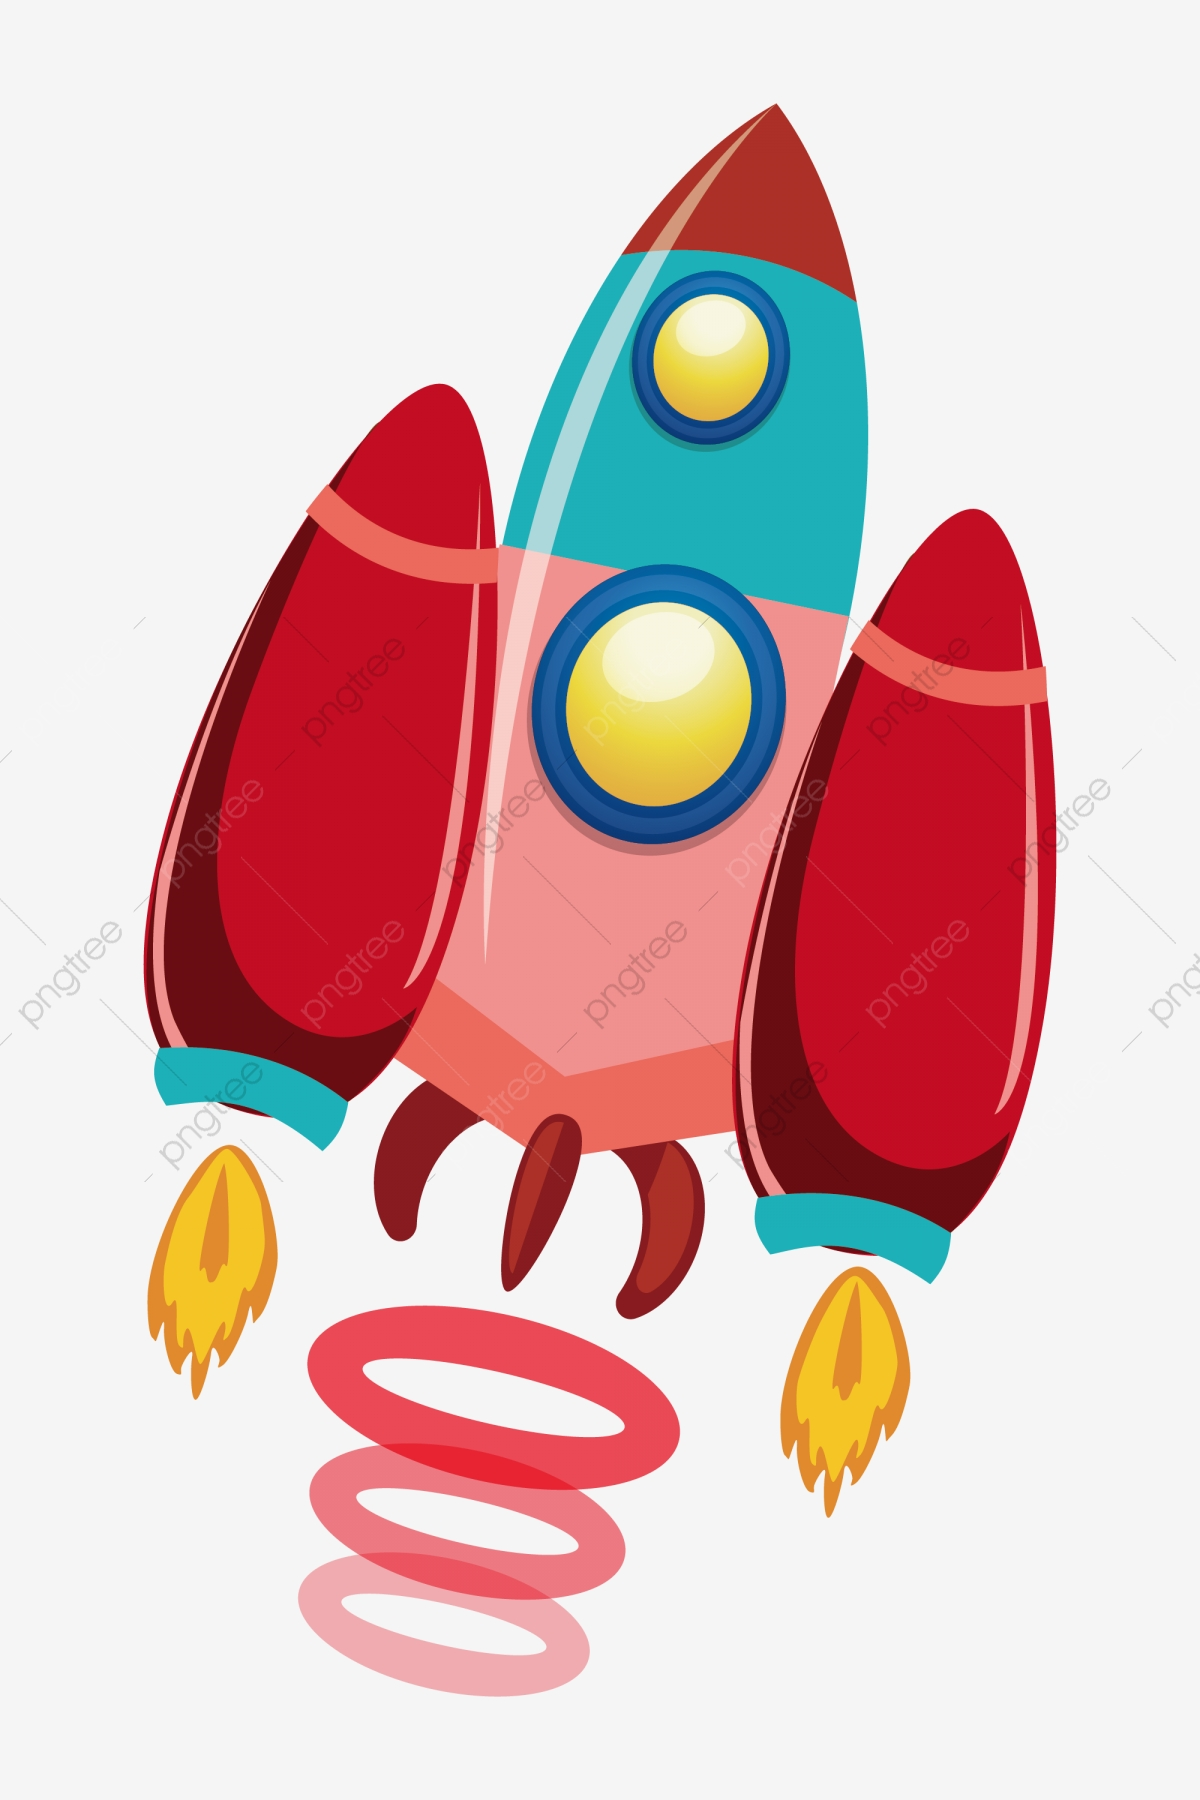 Spaceship clipart red. Cartoon yellow flame space